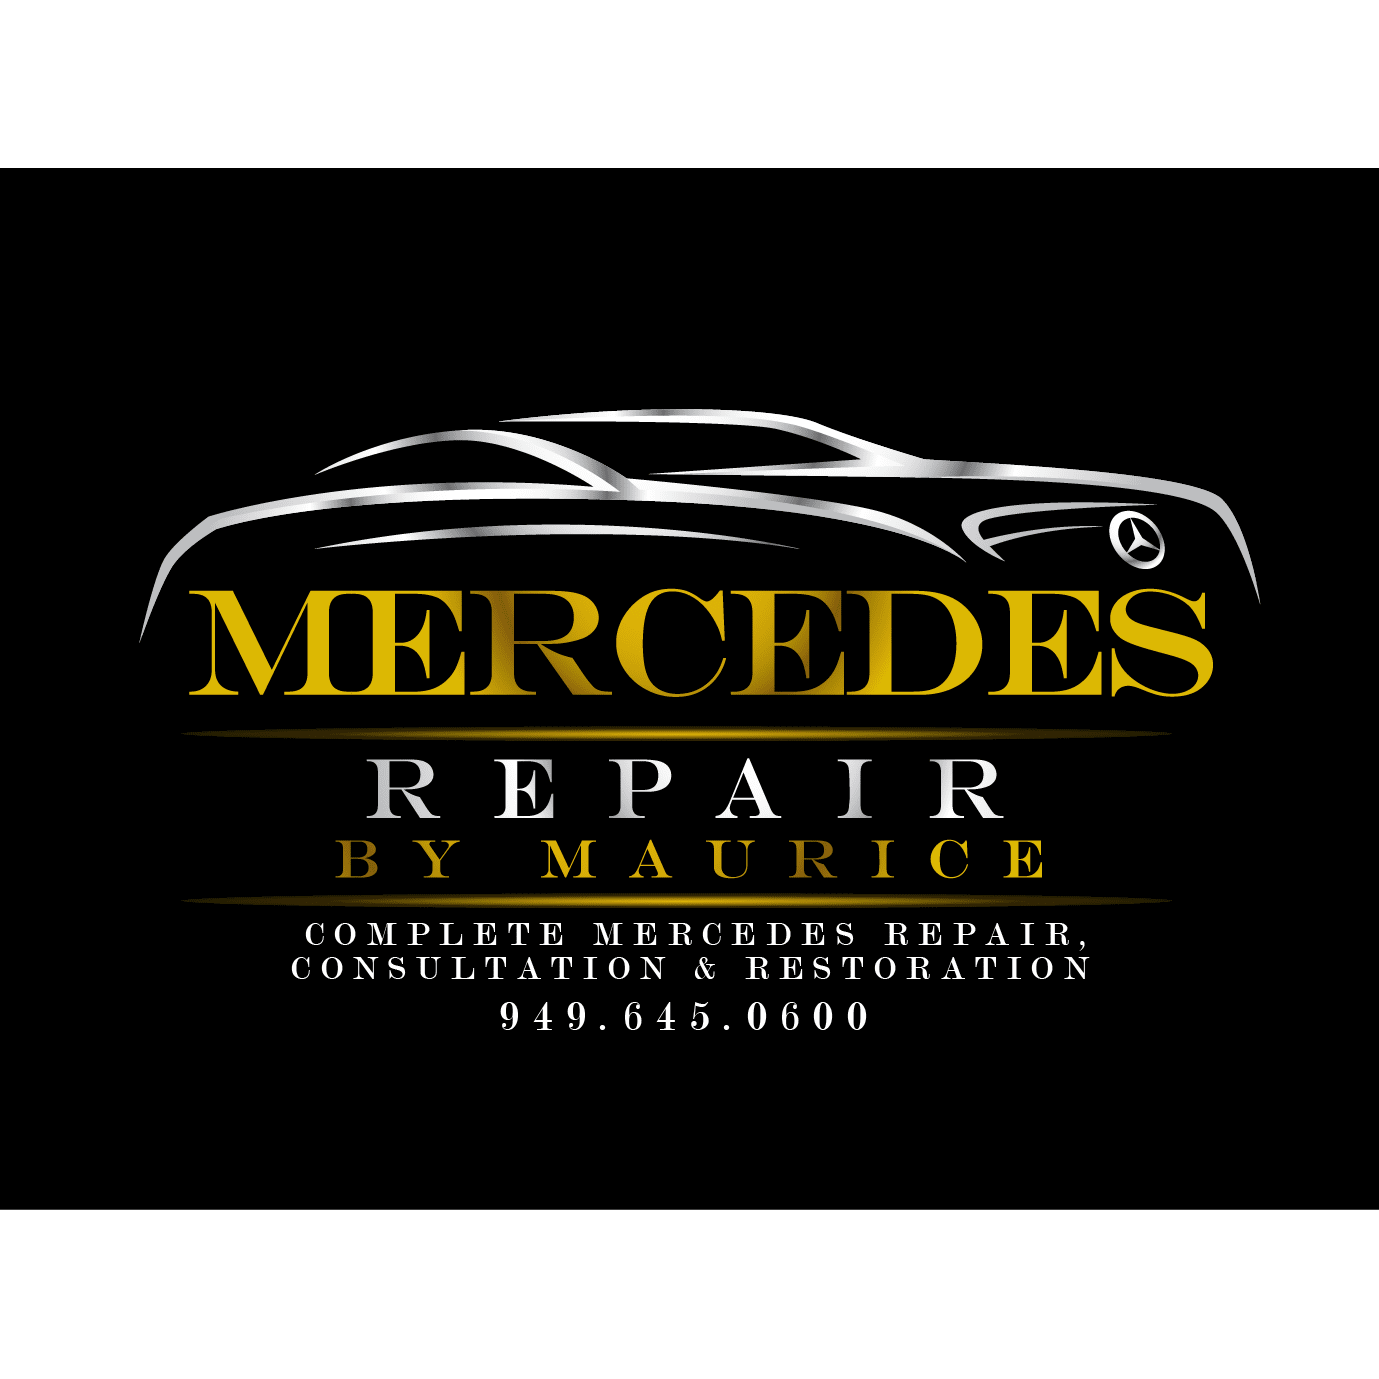 Mercedes Repair by Maurice